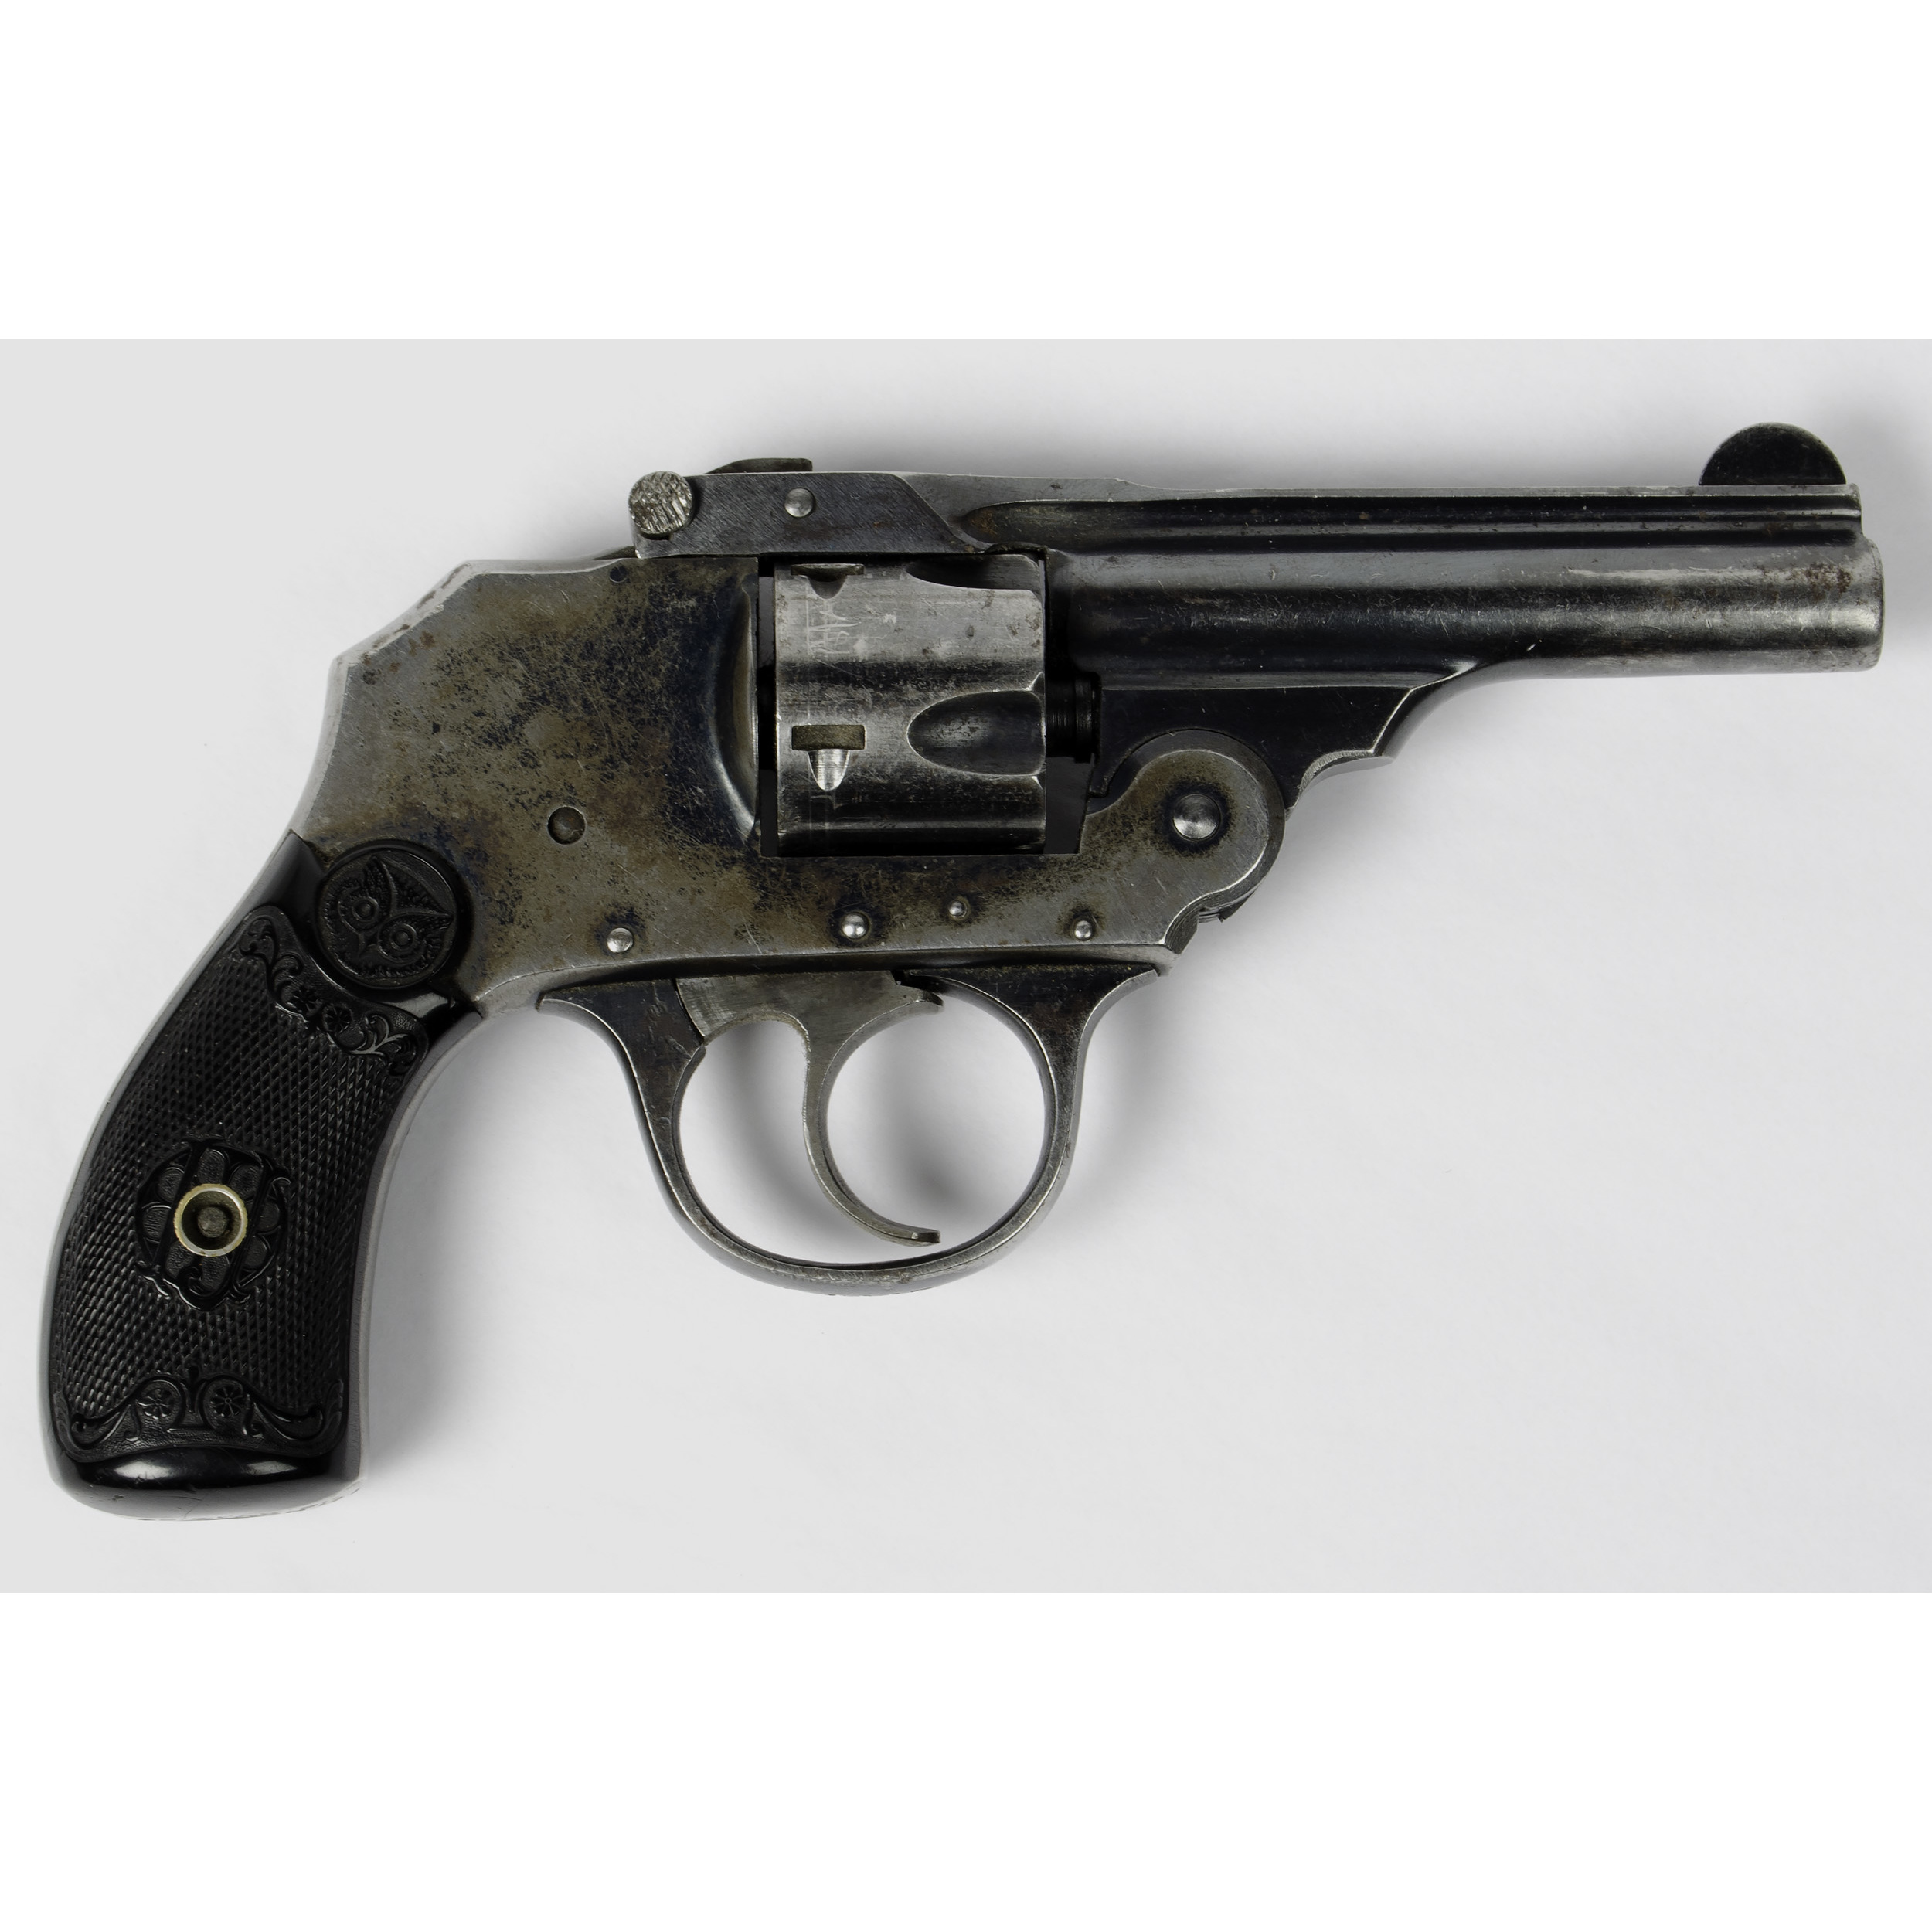 Iver Johnson Pricing and Reference